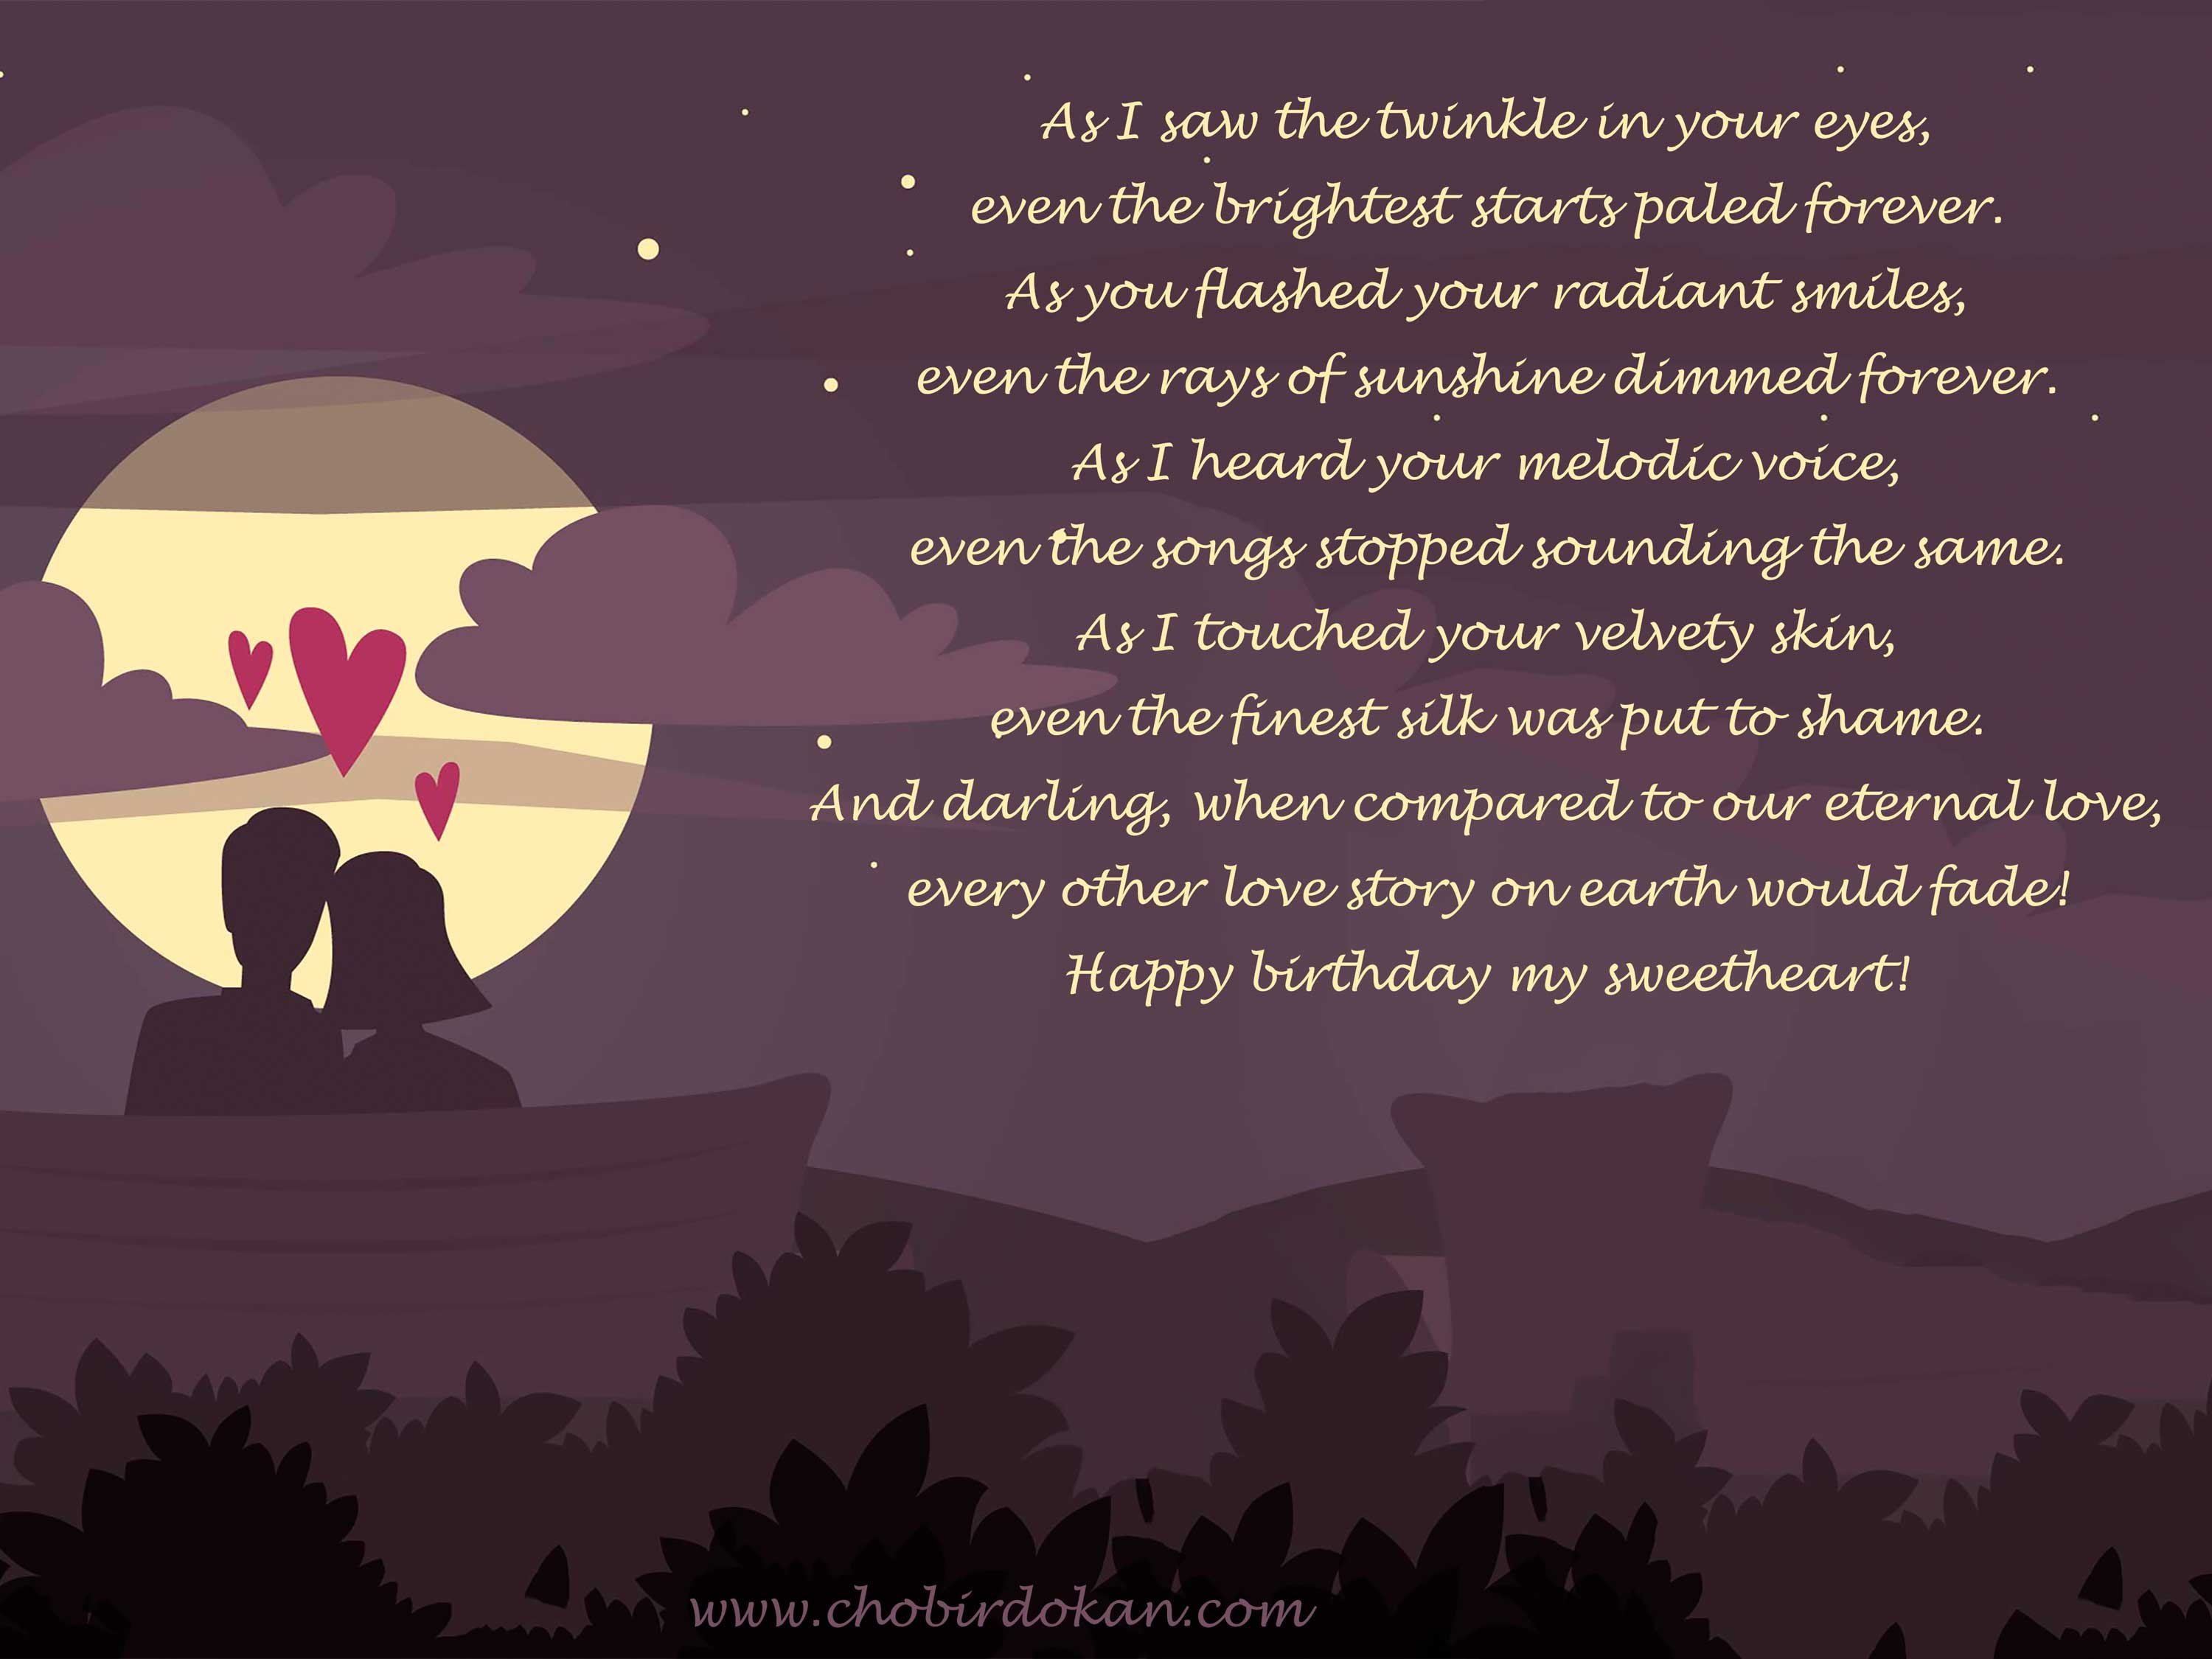 Romantic Happy Birthday Poems For Her -For Girlfriend or ...